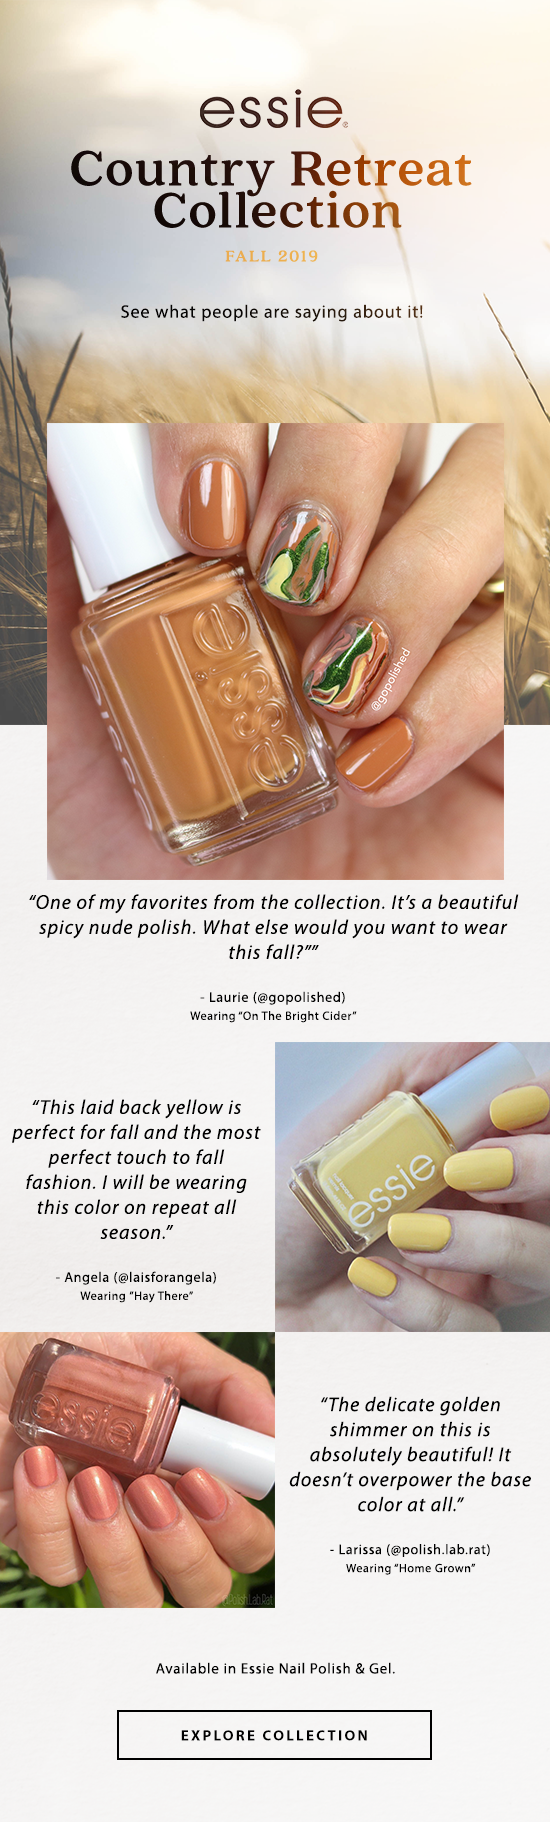 Shop Essie Country Retreat Collection